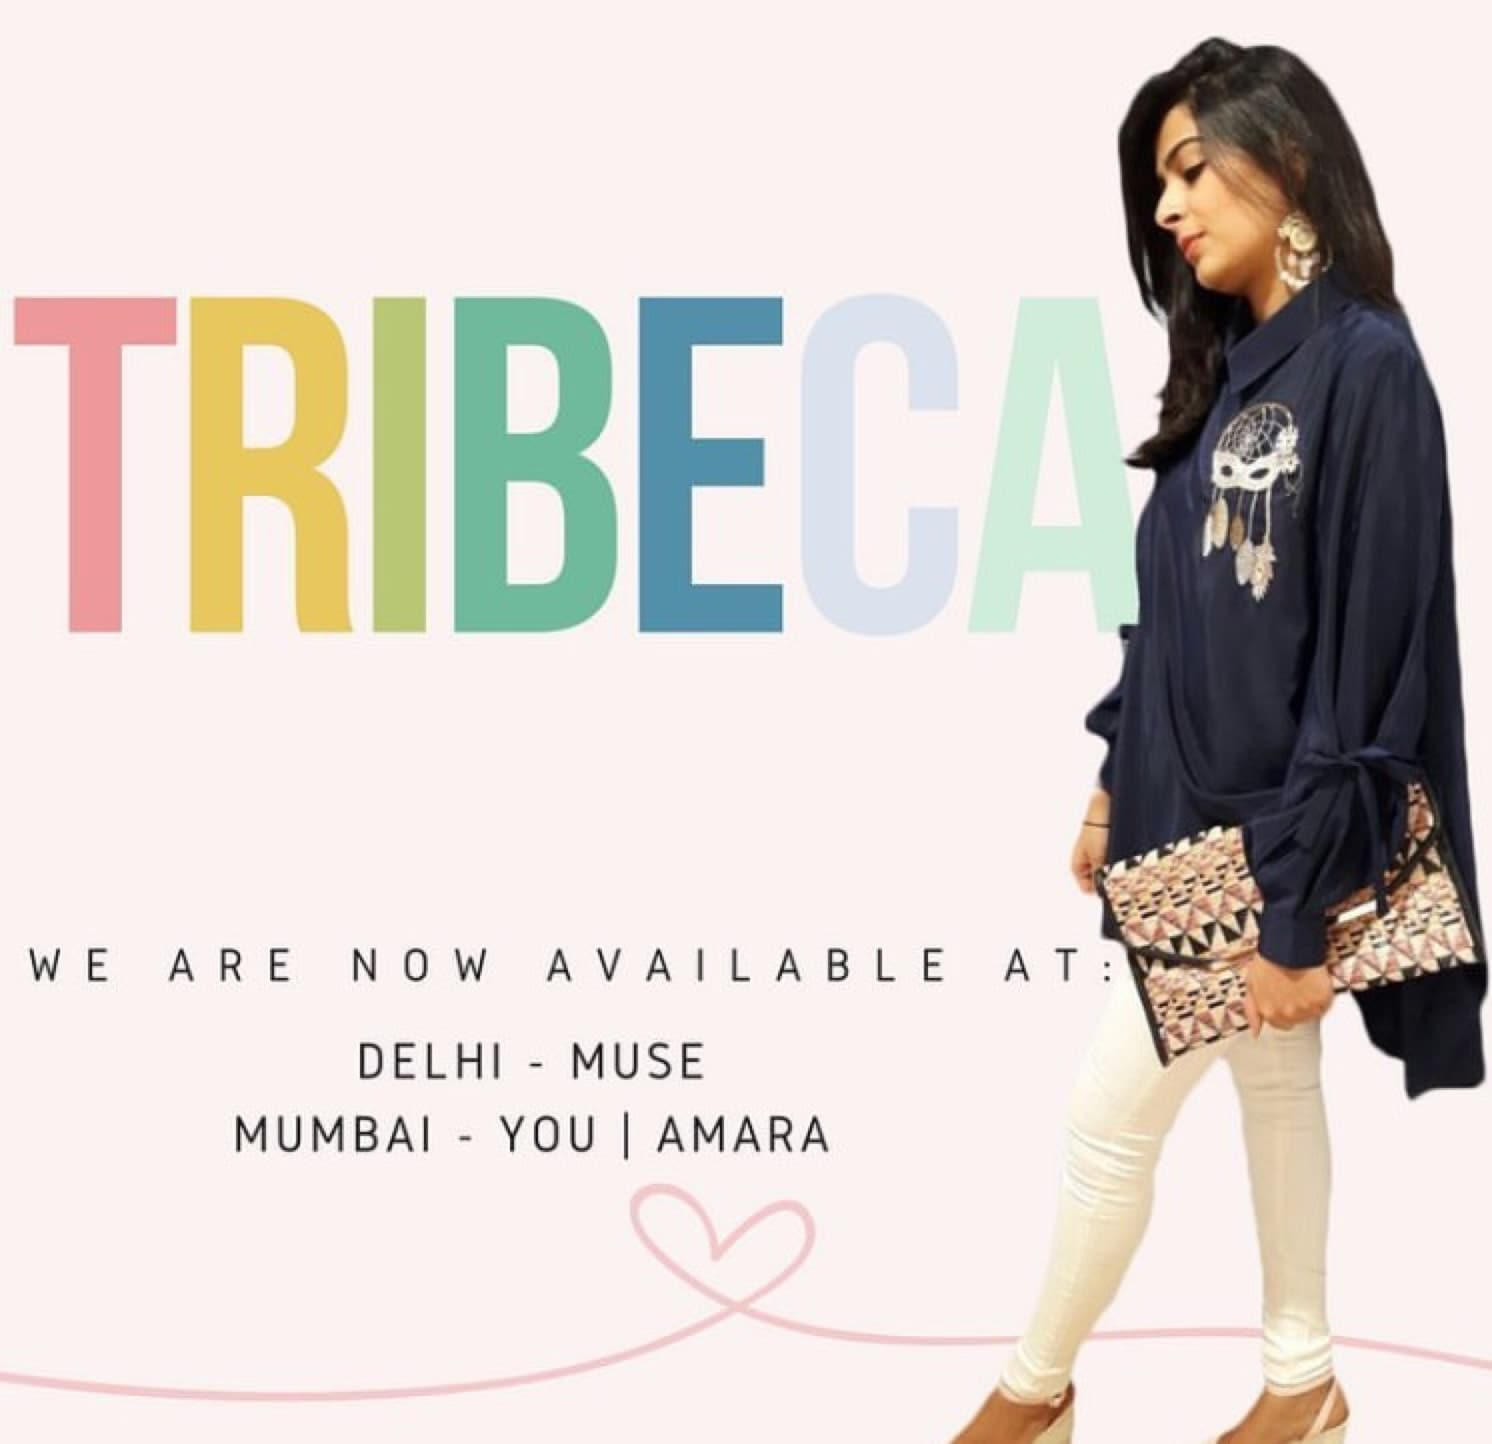 Instagram: www.instagram.com/tribeca_byme Facebook: www.facebook.com/tribecabyme . . . The Dream catcher #Tribeca #NewDelhi #Mumbai #Chennai #Shirts #Dresses #Muse #Amara #You #NewCollection #Trending #Style #Classy #Fashion #Luxury #StyleOfTheDay #FashionBloggers #GirlsWishlist #India #ThinkTribeca #KittyParty #Brunch #Sundown #Cocktail #DinnerDate #ShopTribeca #ShopTillYouDrop #WearTribeca #SummerCollection     Contact  us on +919820791753